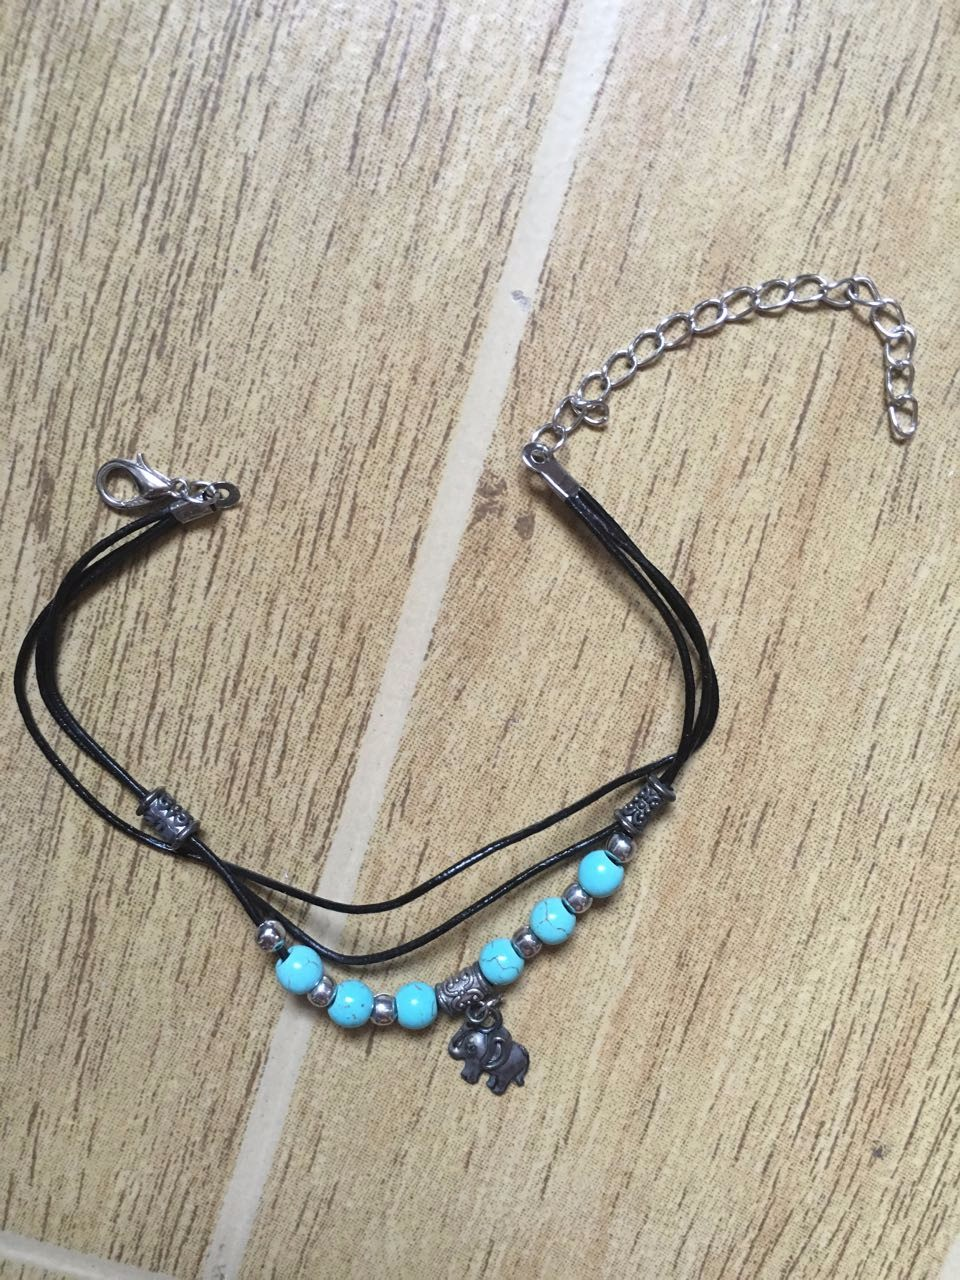 2016 New Beach Jewelry Tibetan Elephant Pendant  Turquoise Beads Anklet Foot Leather Chain Ankle Bracelet B56